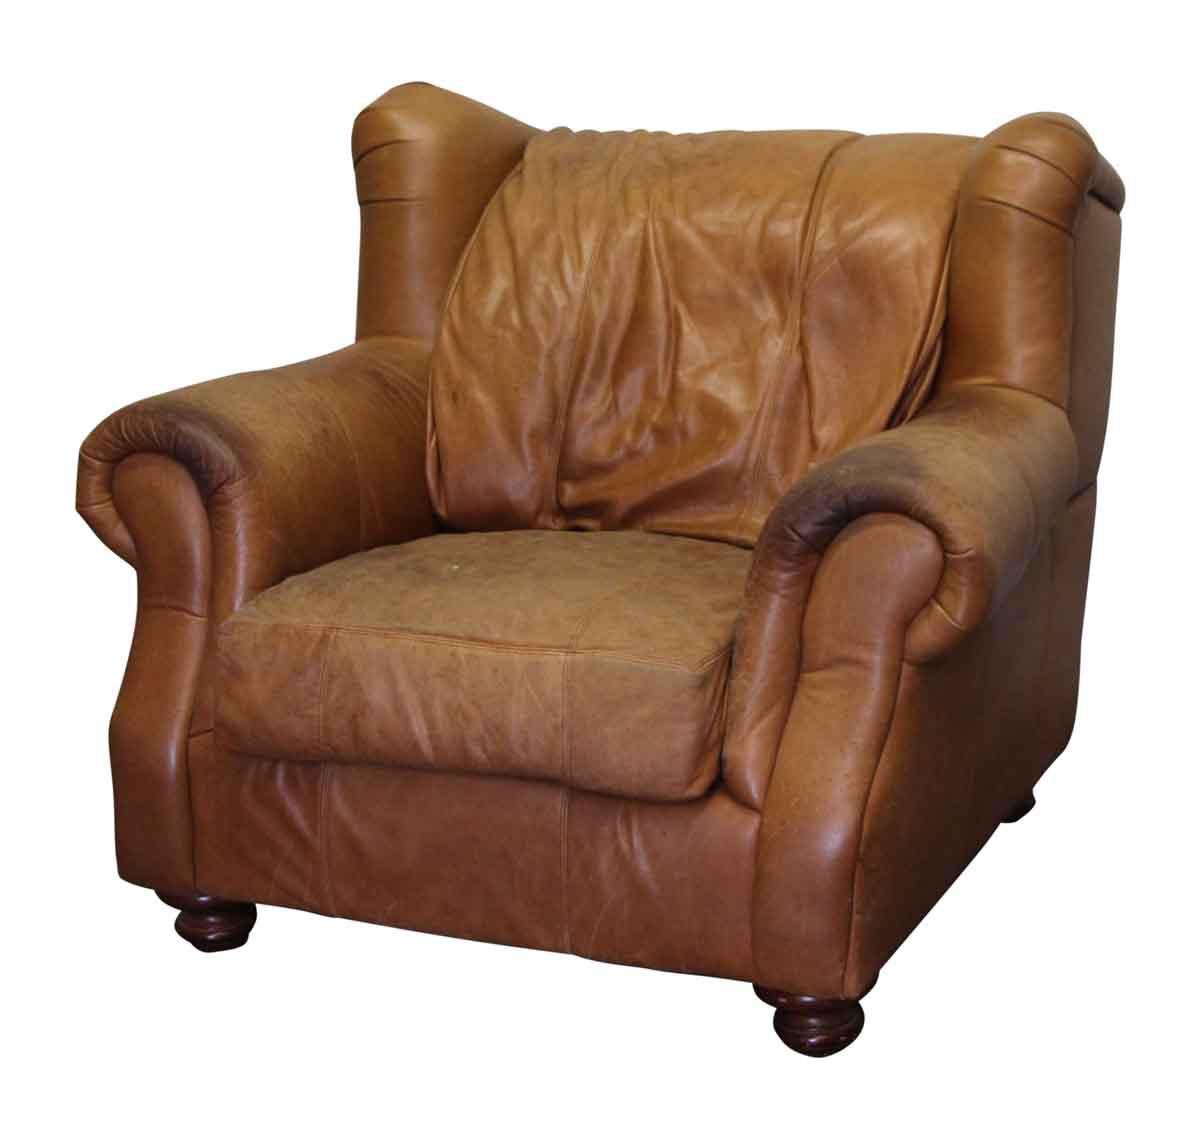 traditional wingback chair wood recliner leather chairish newer brown wing back armchair this comfy shows discoloration from age and